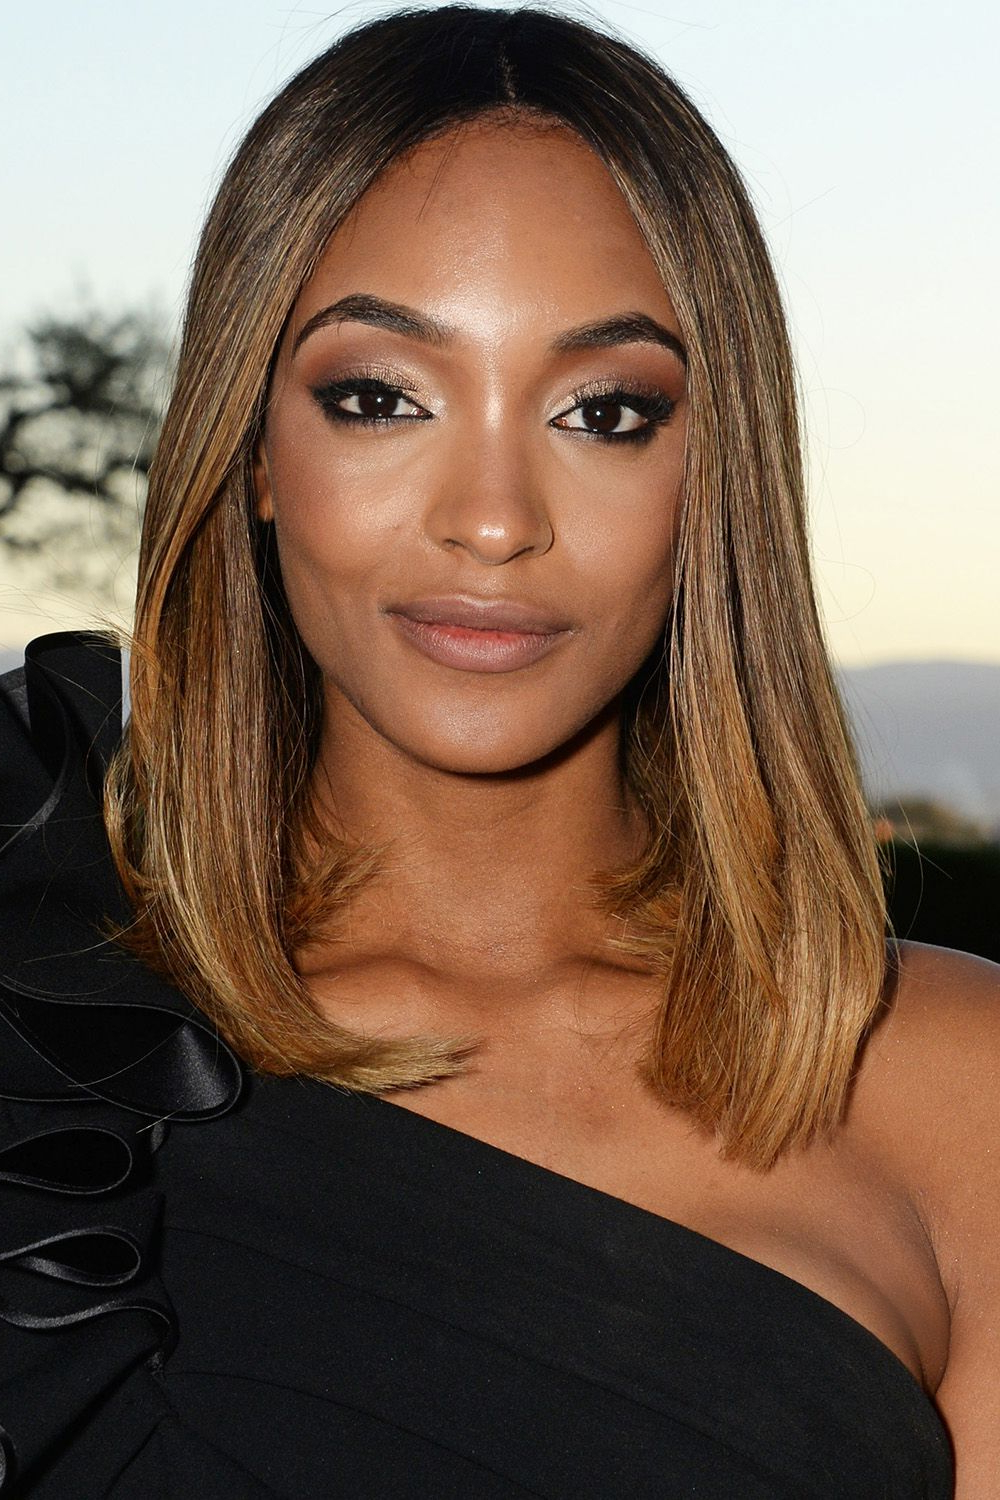 Trendy Sleek Mid Length Haircuts With Shaggy Ends In 50 Best Medium Hairstyles – Celebrities With Shoulder Length (View 19 of 20)